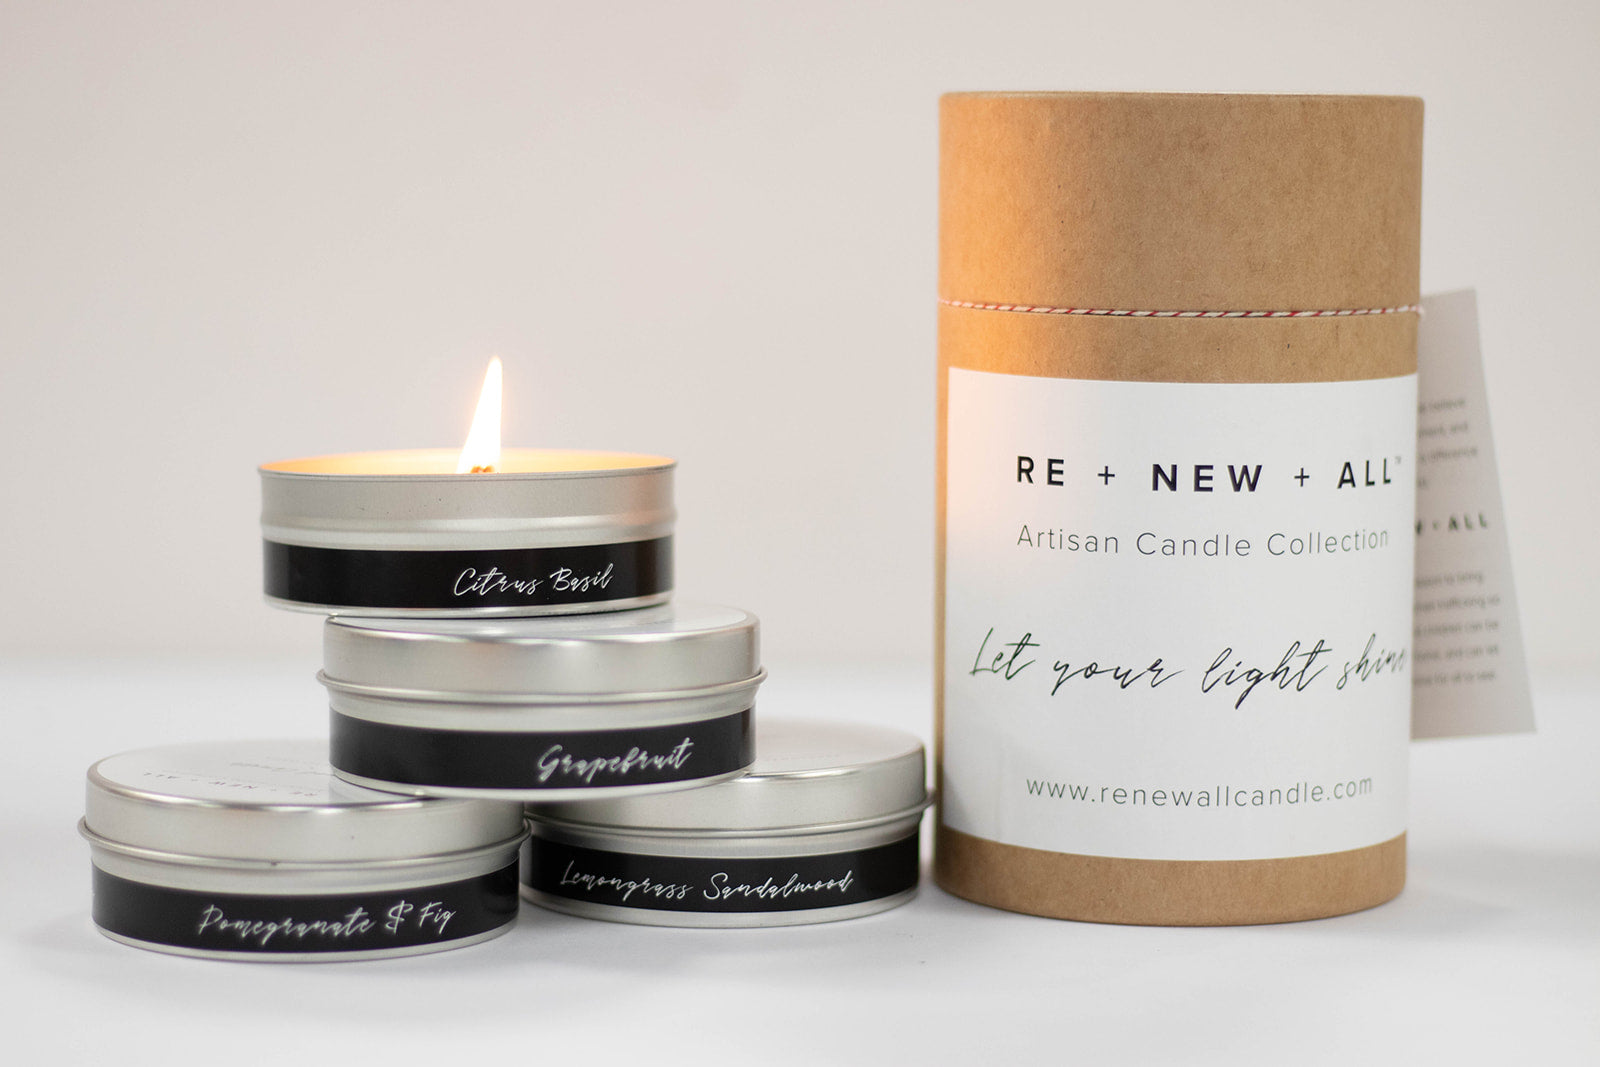 RE+NEW+ALL Travel Candle Collection Set